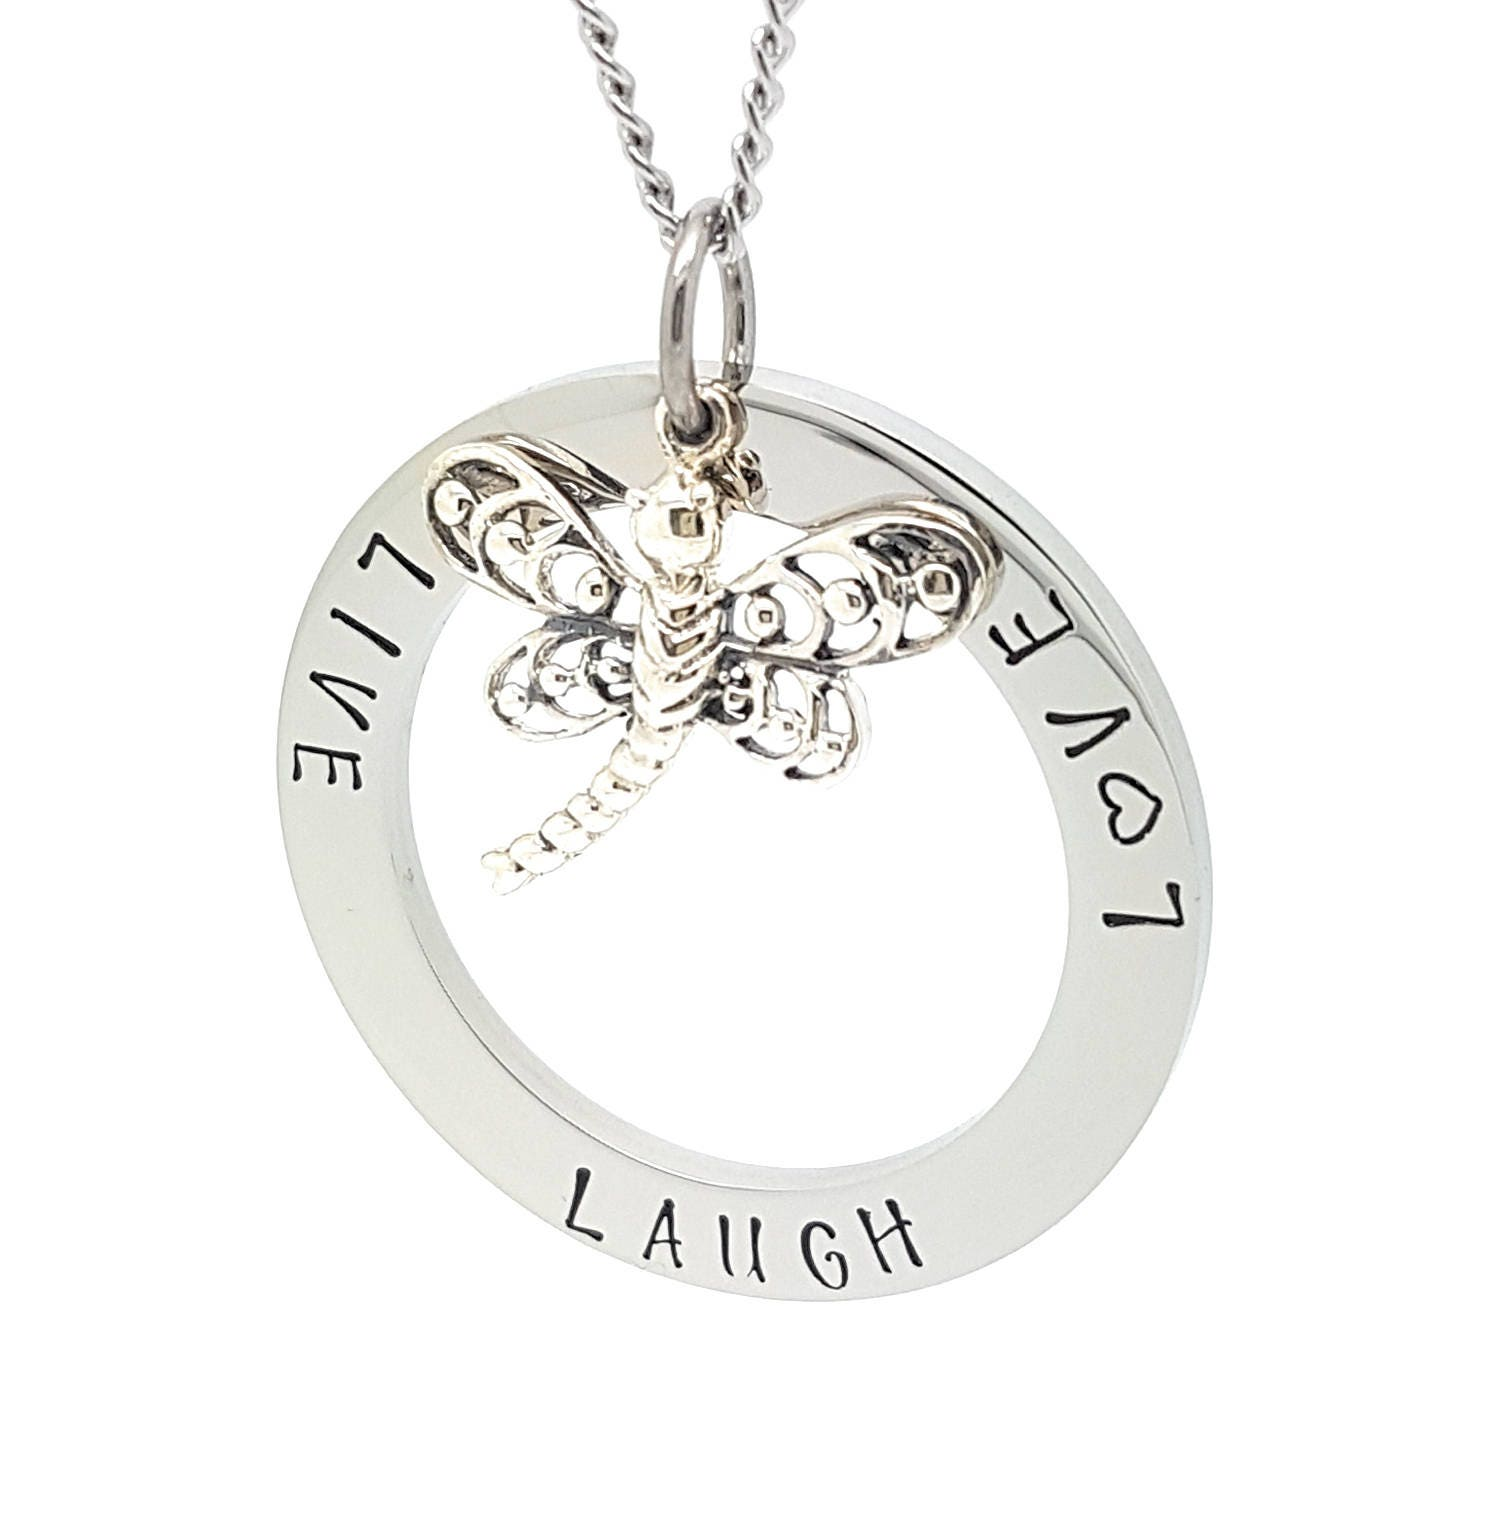 Personalised jewellery personalised necklace family necklace hand personalised jewellery personalised necklace family necklace hand stamped circle silver pendant with sterling dragonfly necklace aloadofball Choice Image